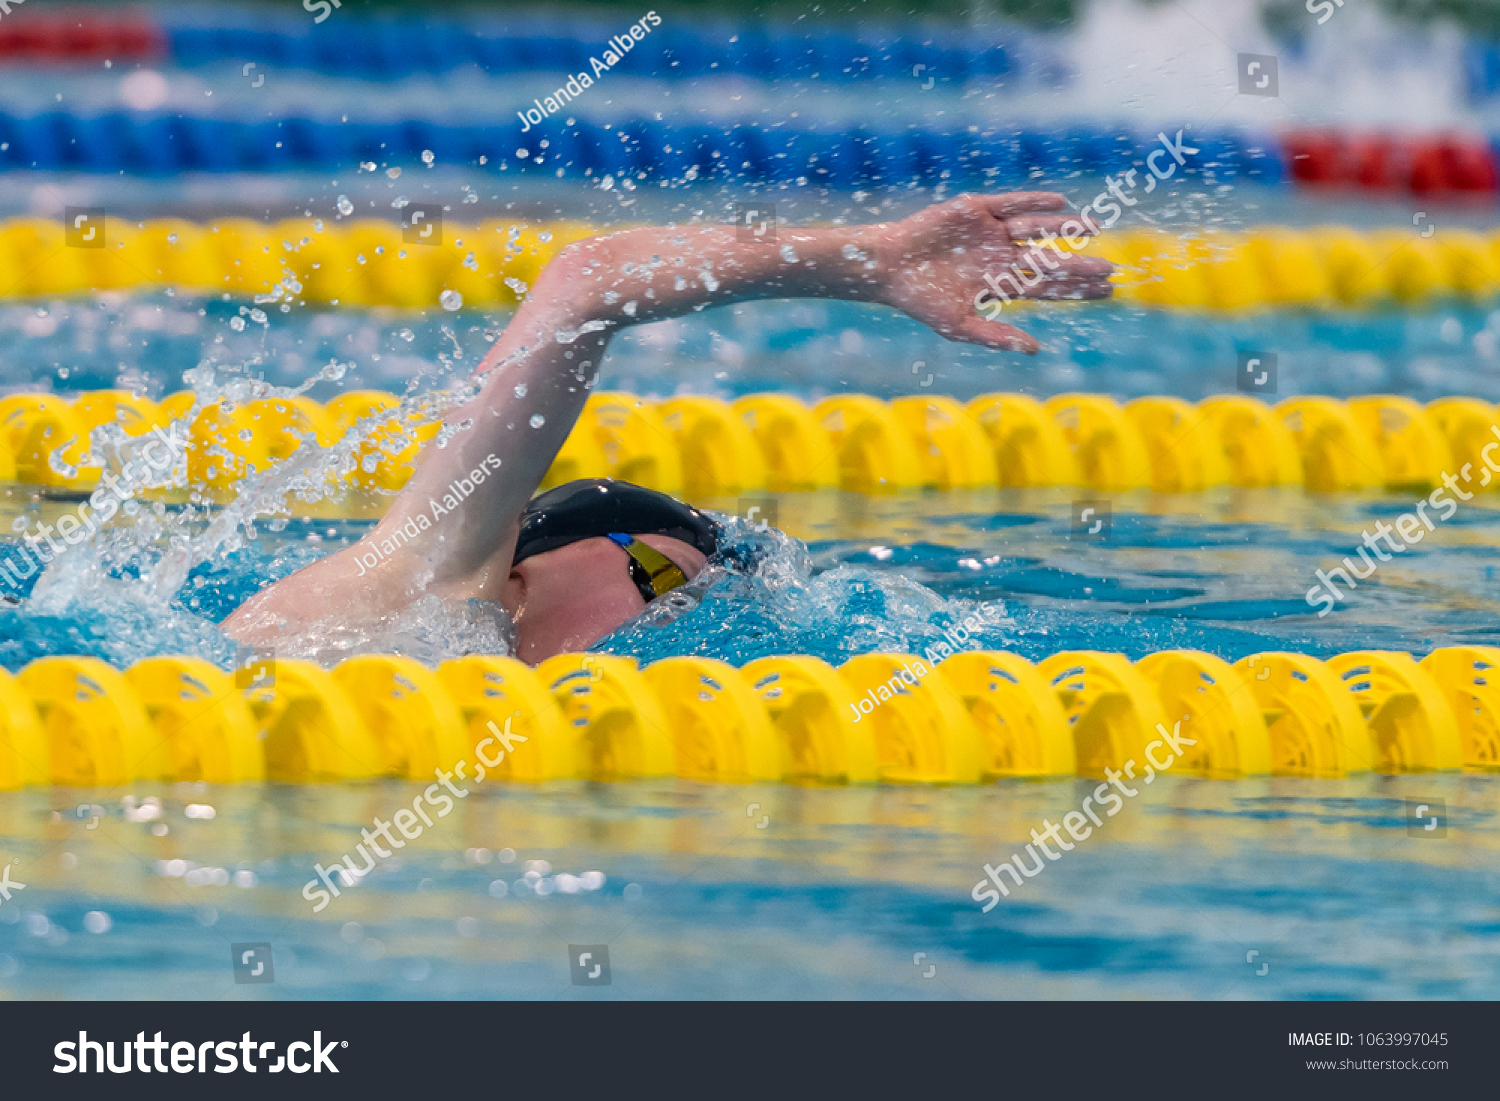 Front crawl nk games swimming pool stock photo edit now 1063997045